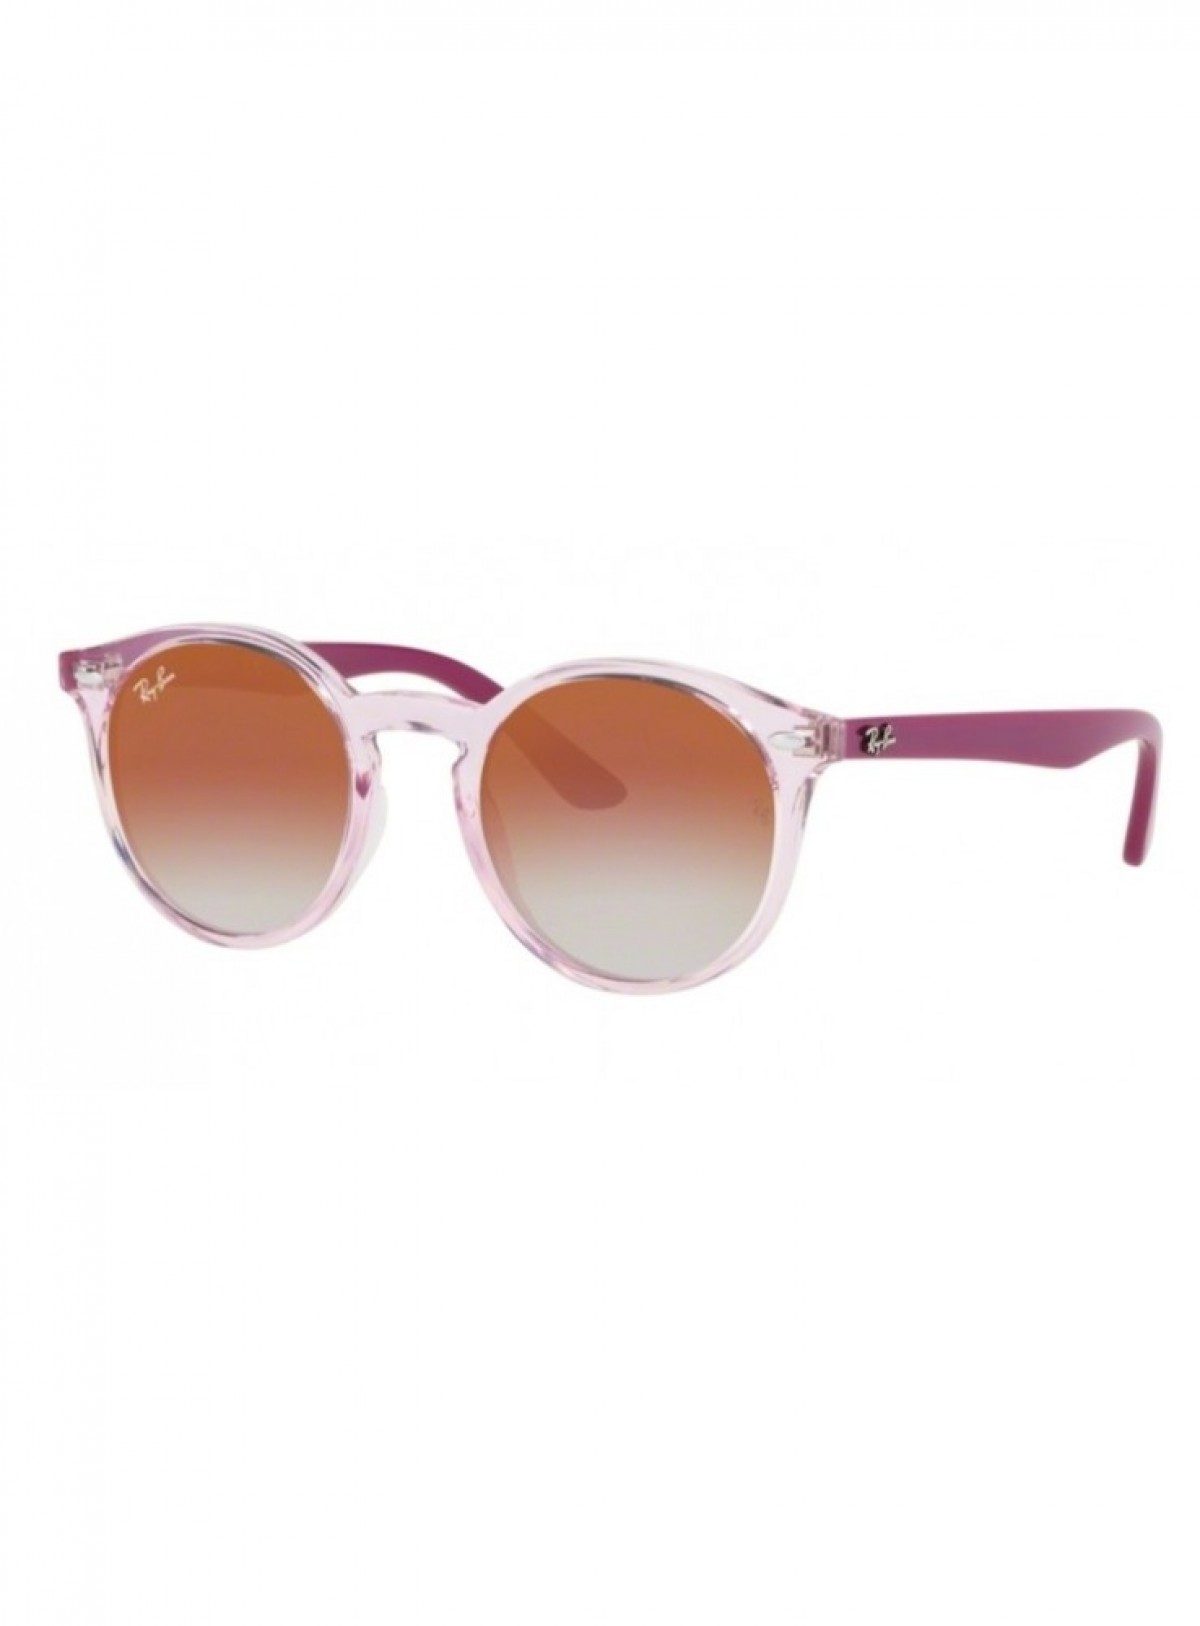 Ray-Ban Junior 9064S 7052V0 44, 65,00 €, Occhiali Ray Ban Junior Rosa a forma Rotondo